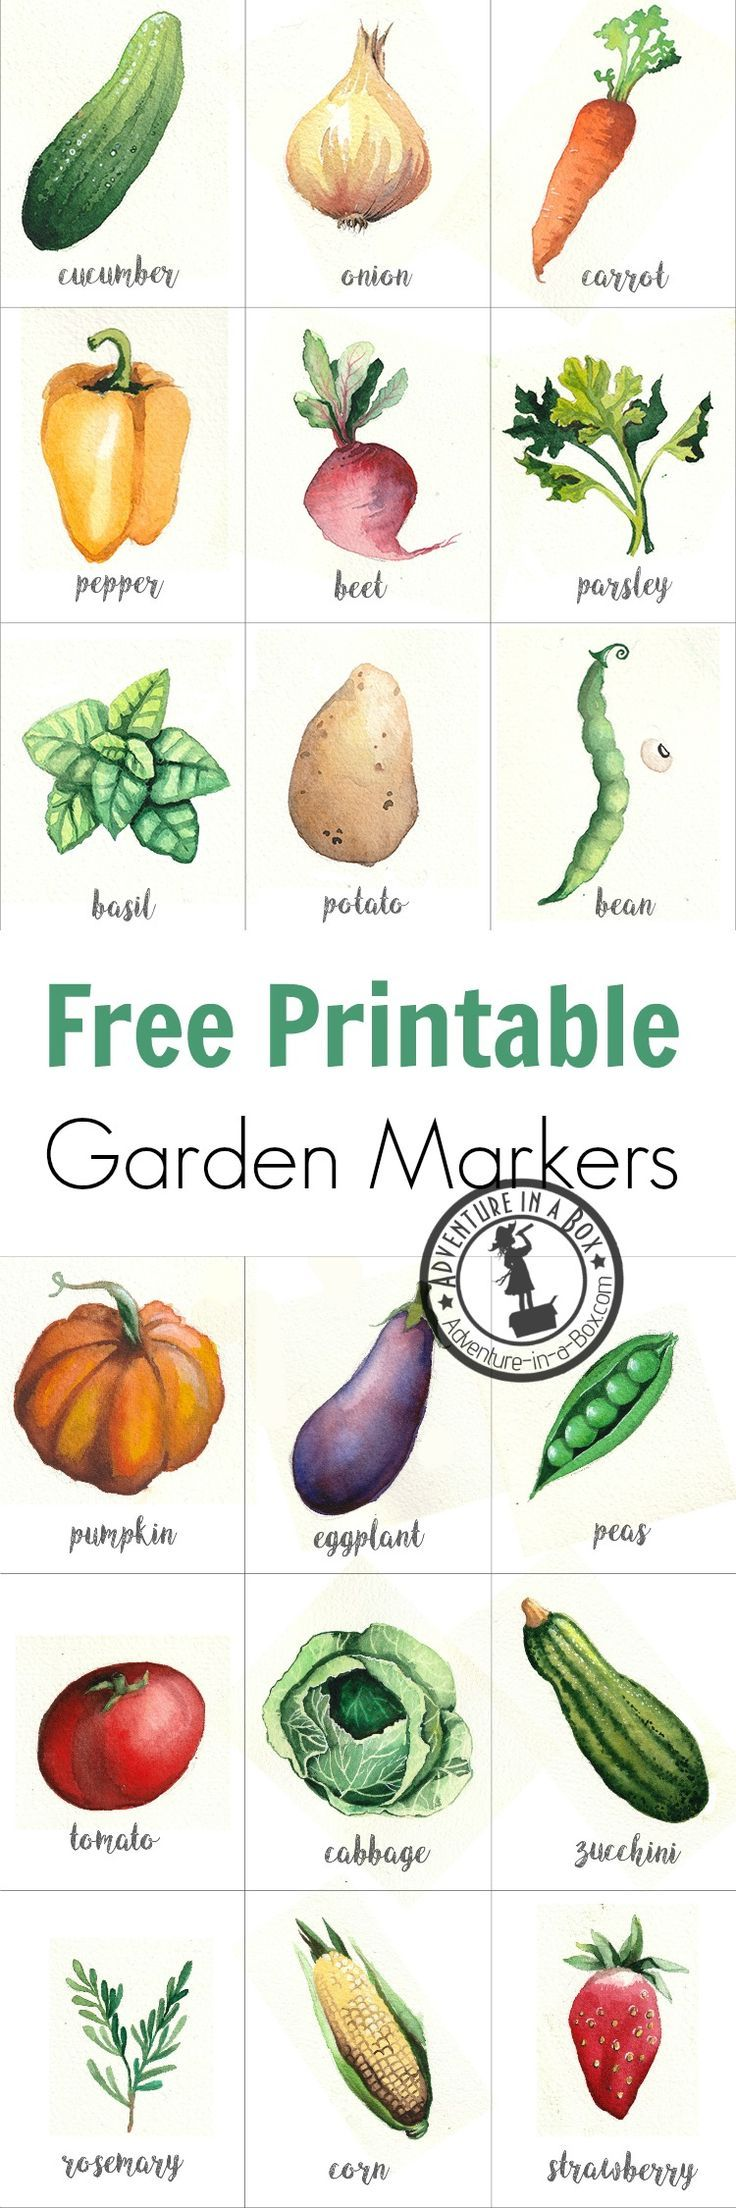 Square foot garden map free printable for garden journal - Free Printable Watercolour Garden Markers